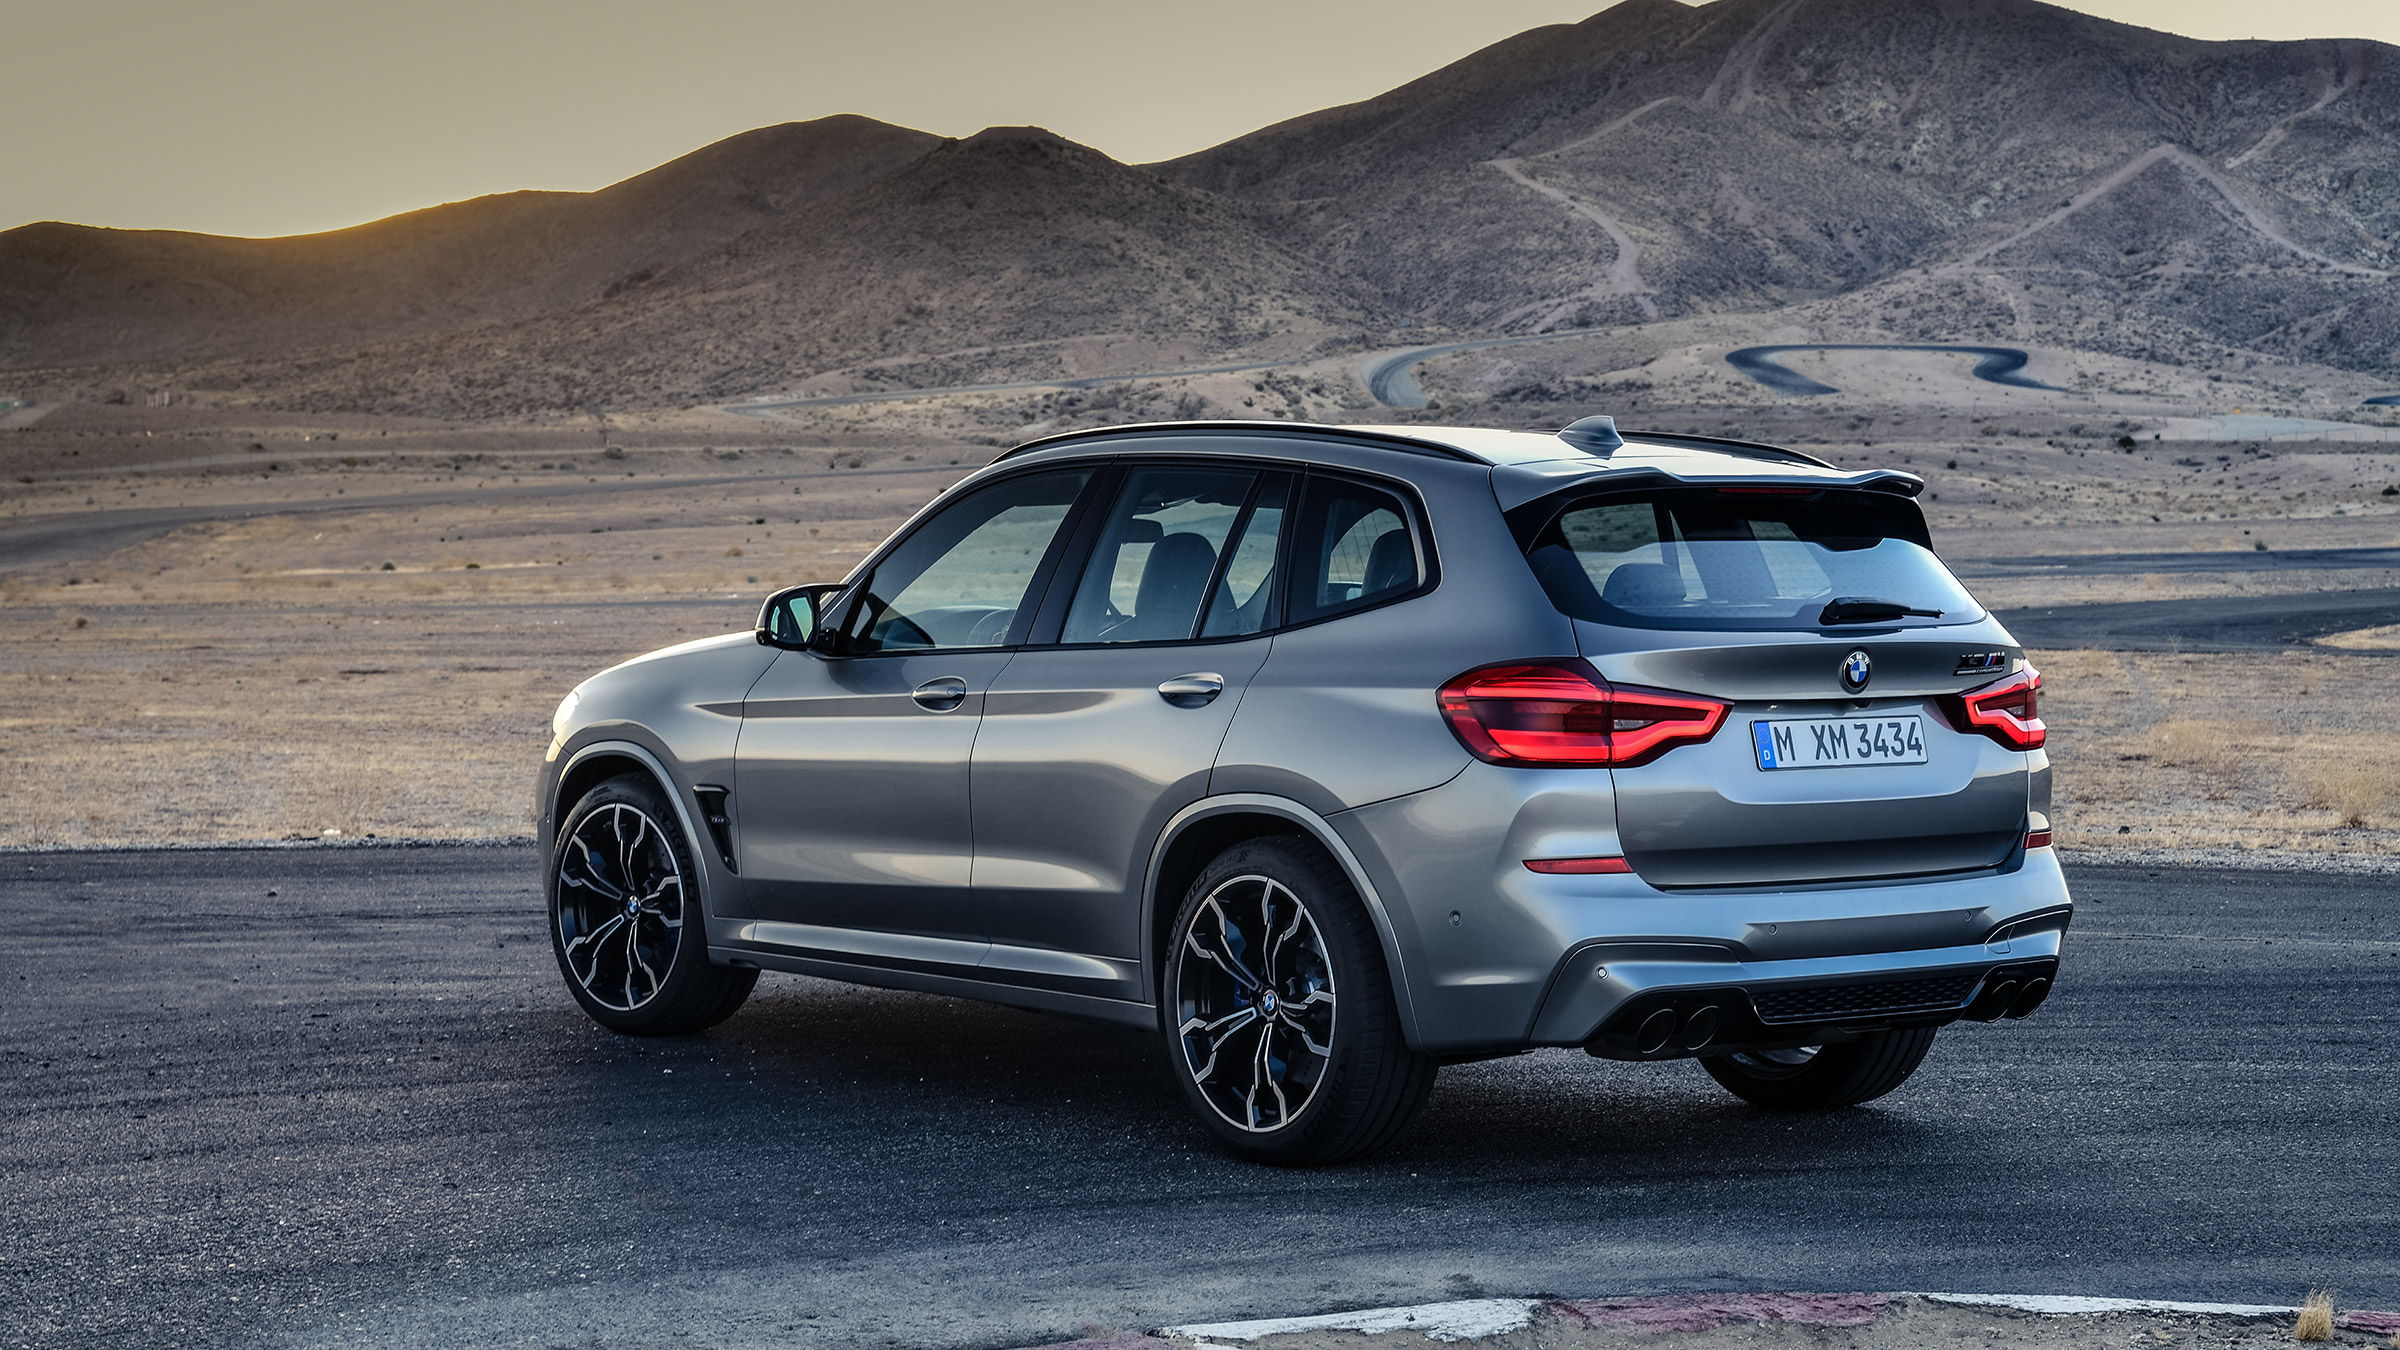 Bmw X3 M 2020 Review The Right Ingredients In A Very Wrong Package Evo